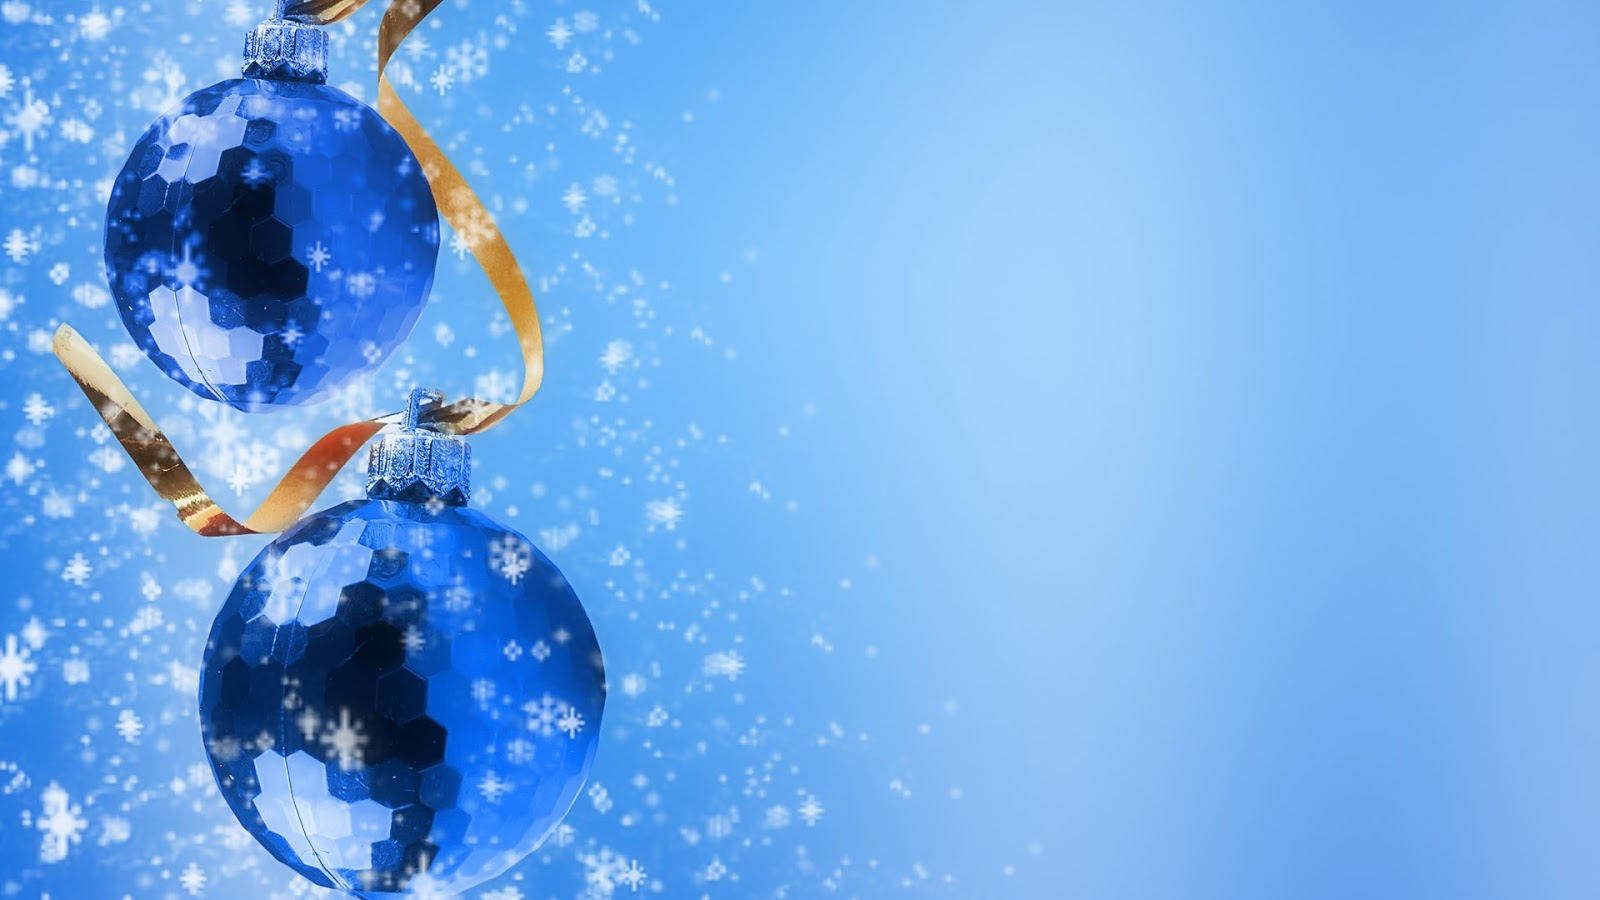 Free High-Definition Wallpapers: Christmas Wallpaper HD Free ...